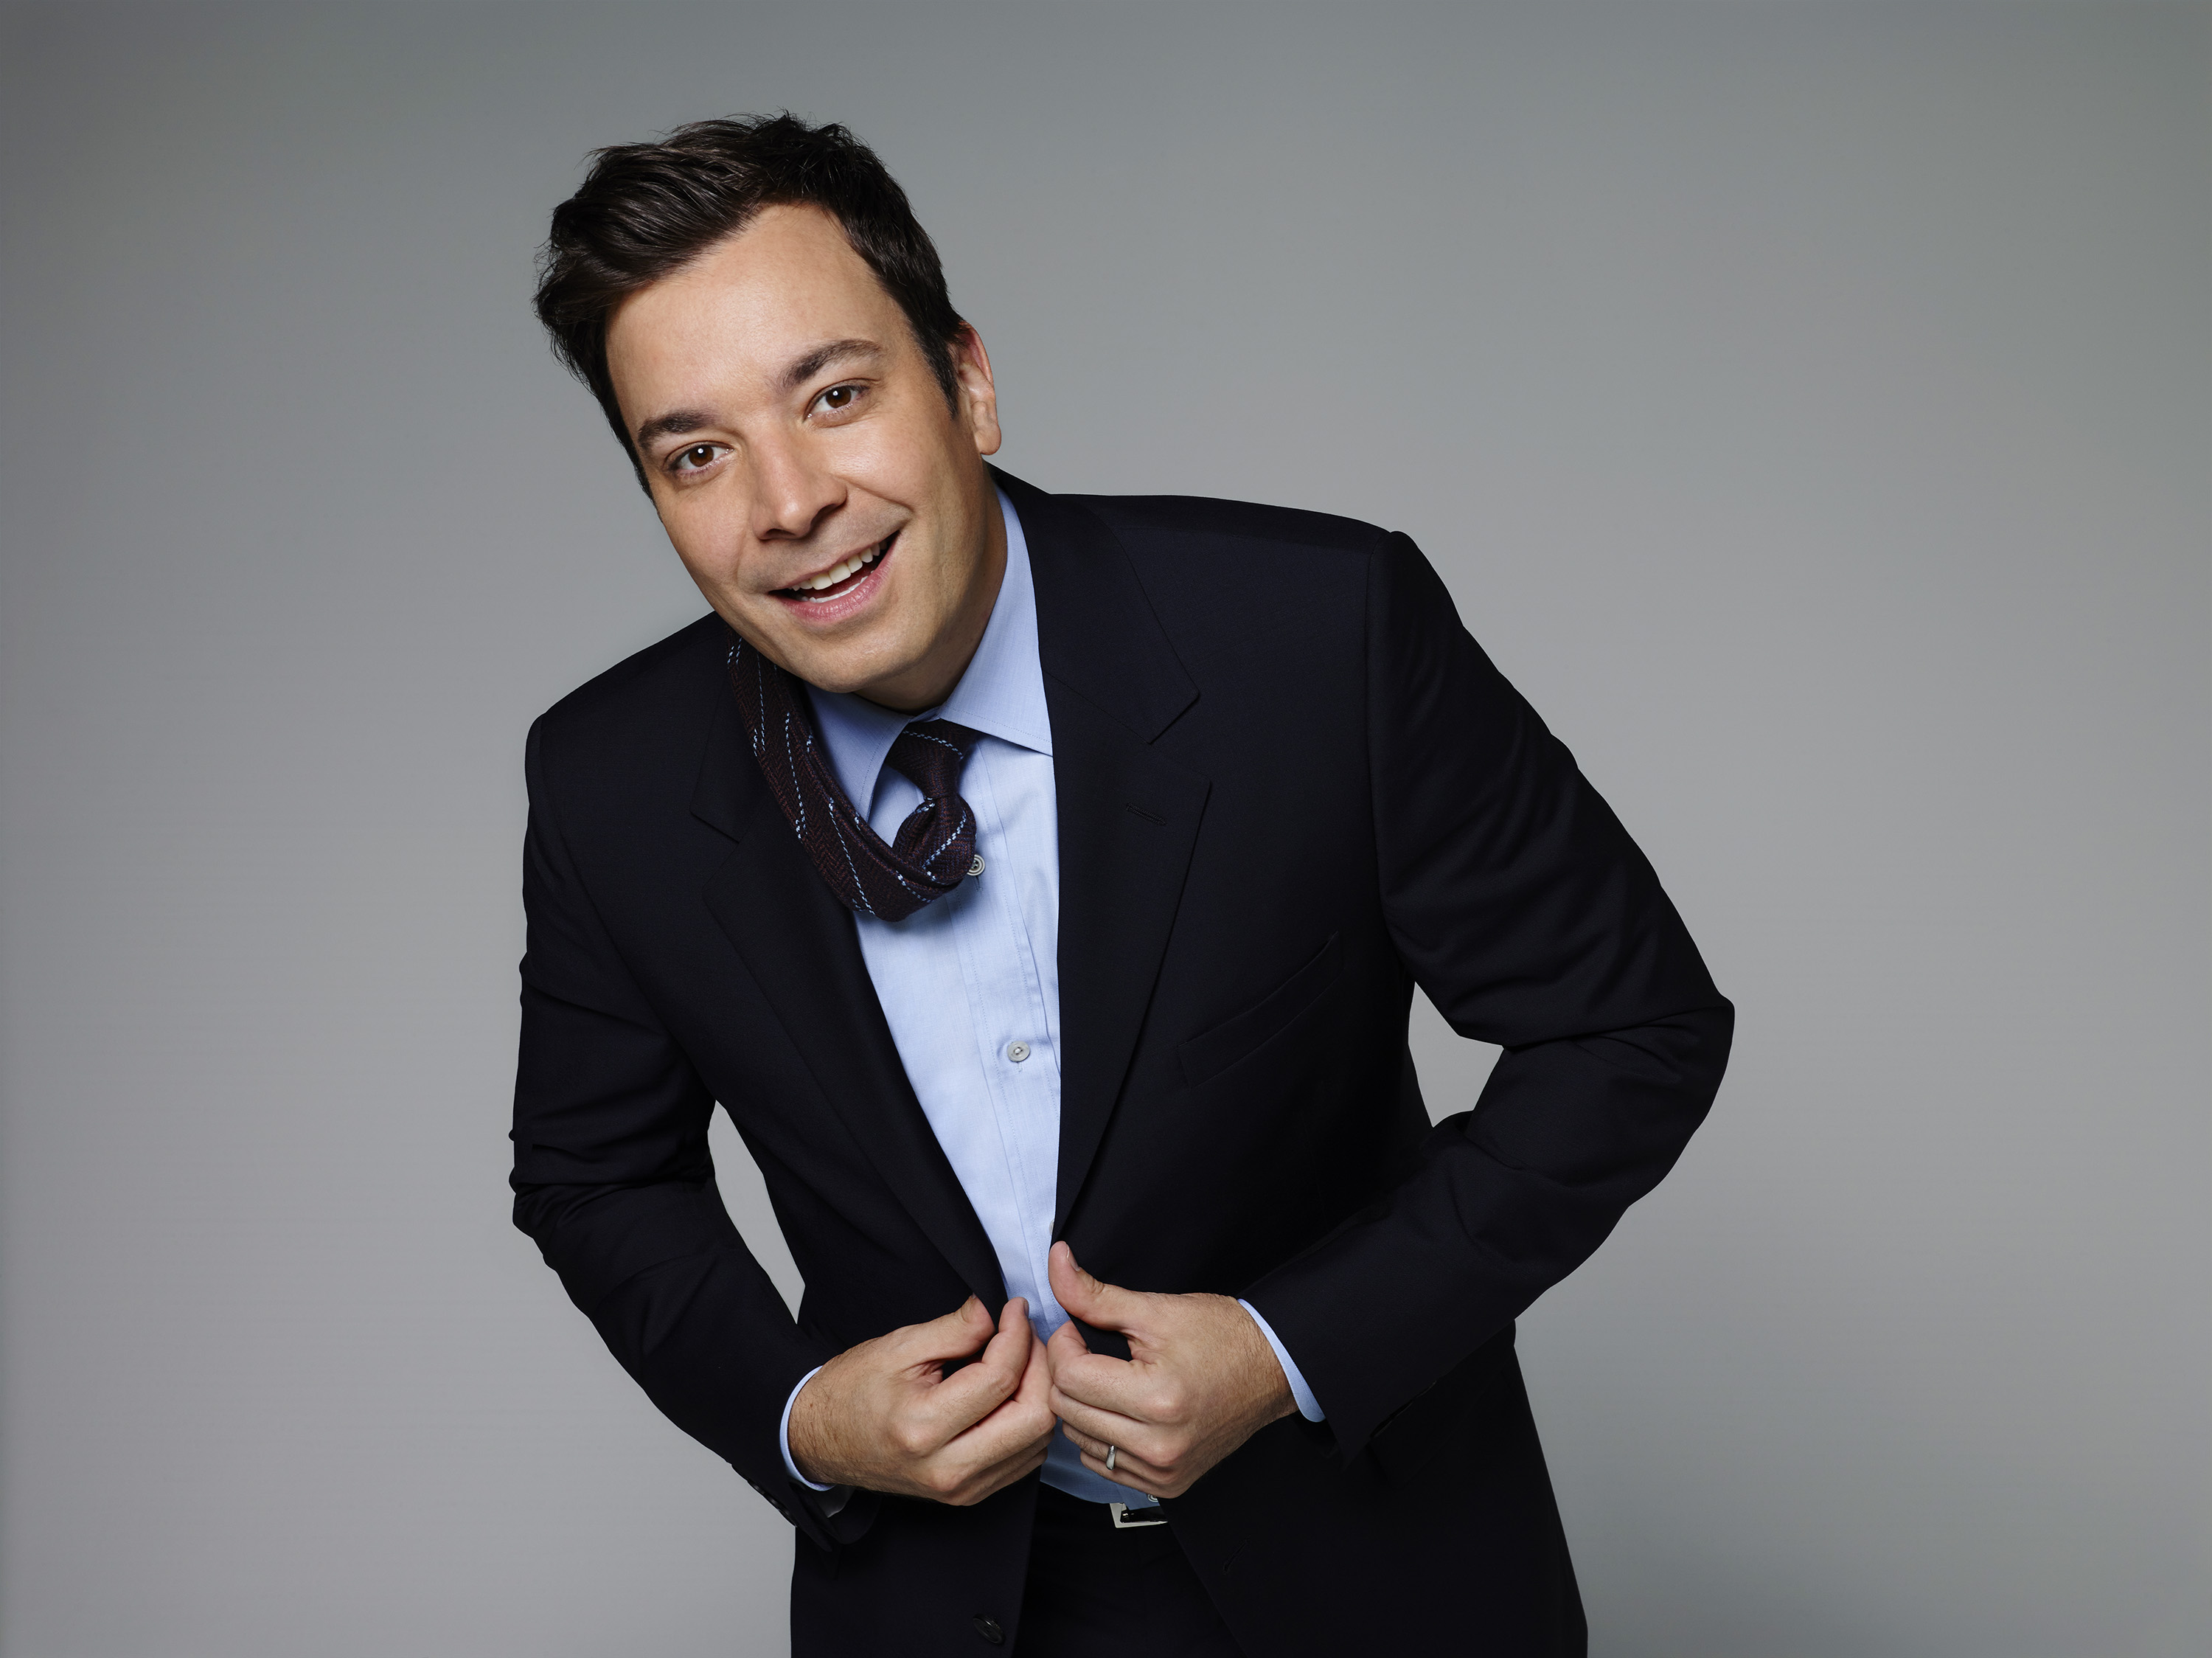 Pictures of Jimmy Fallon   Pictures Of Celebrities 3000x2248